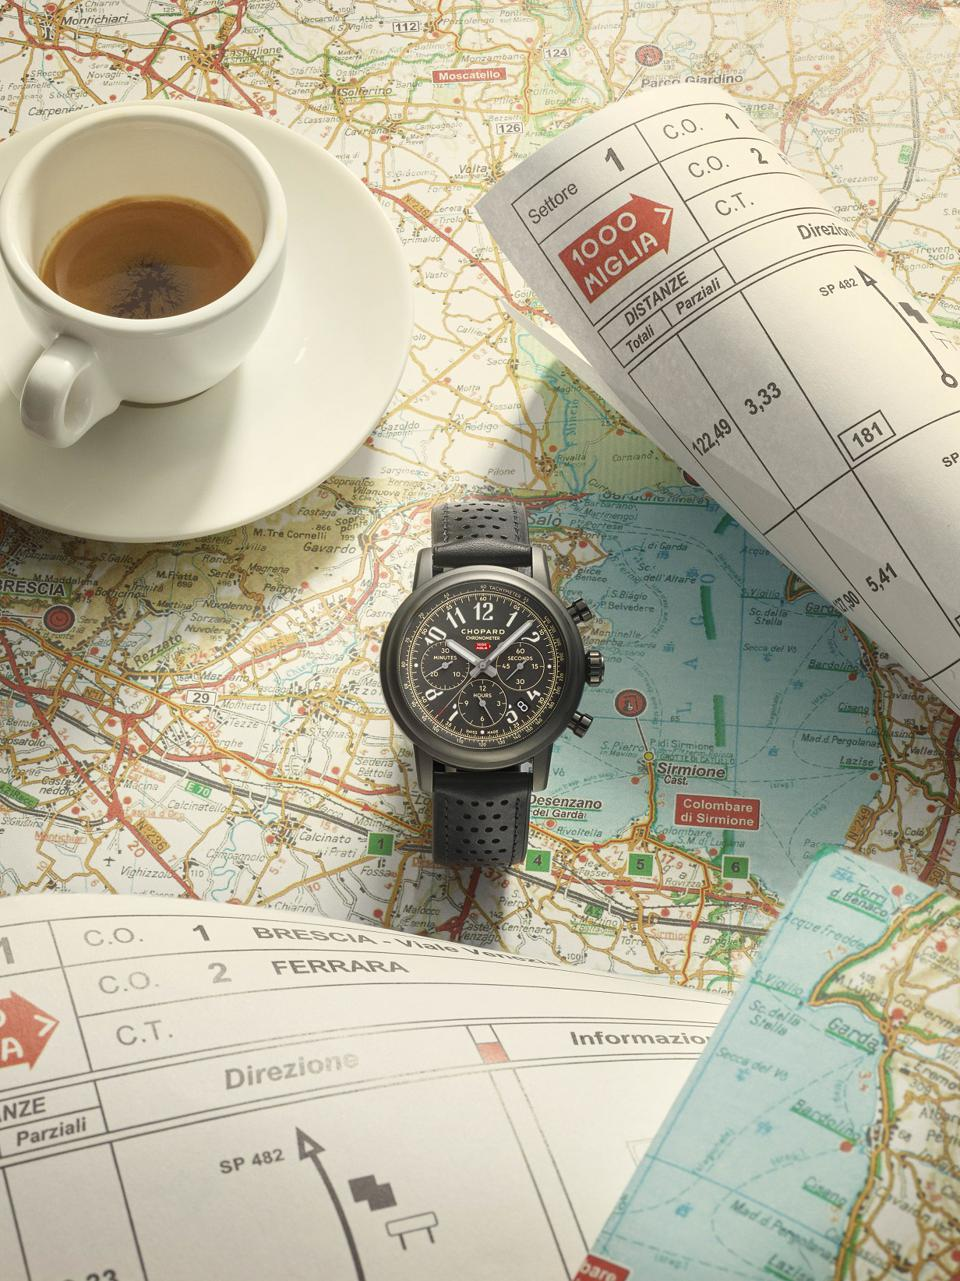 The Mille Miglia 2020 Race Edition